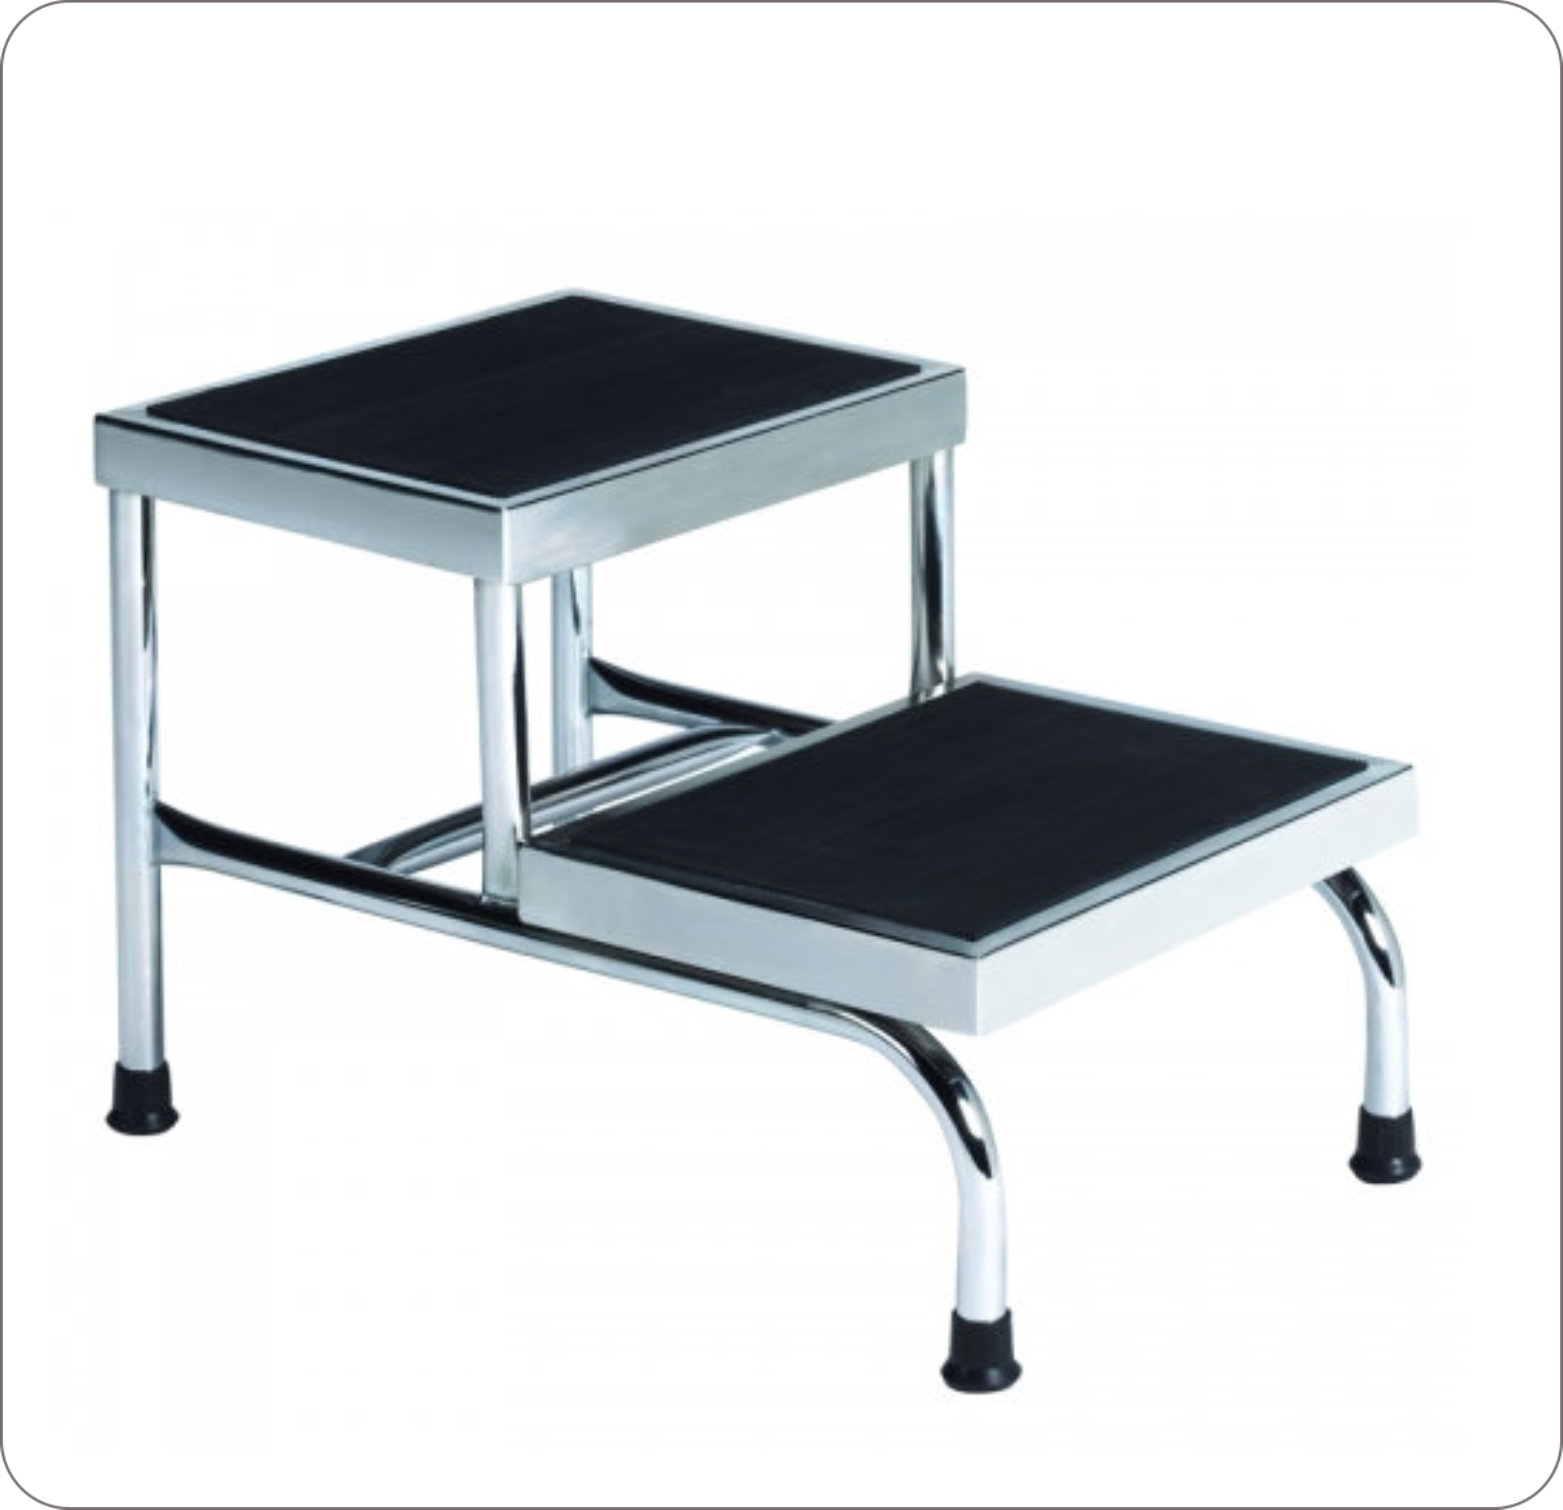 Footstool Chrome Non-Skid Top H 350Lb Capacity